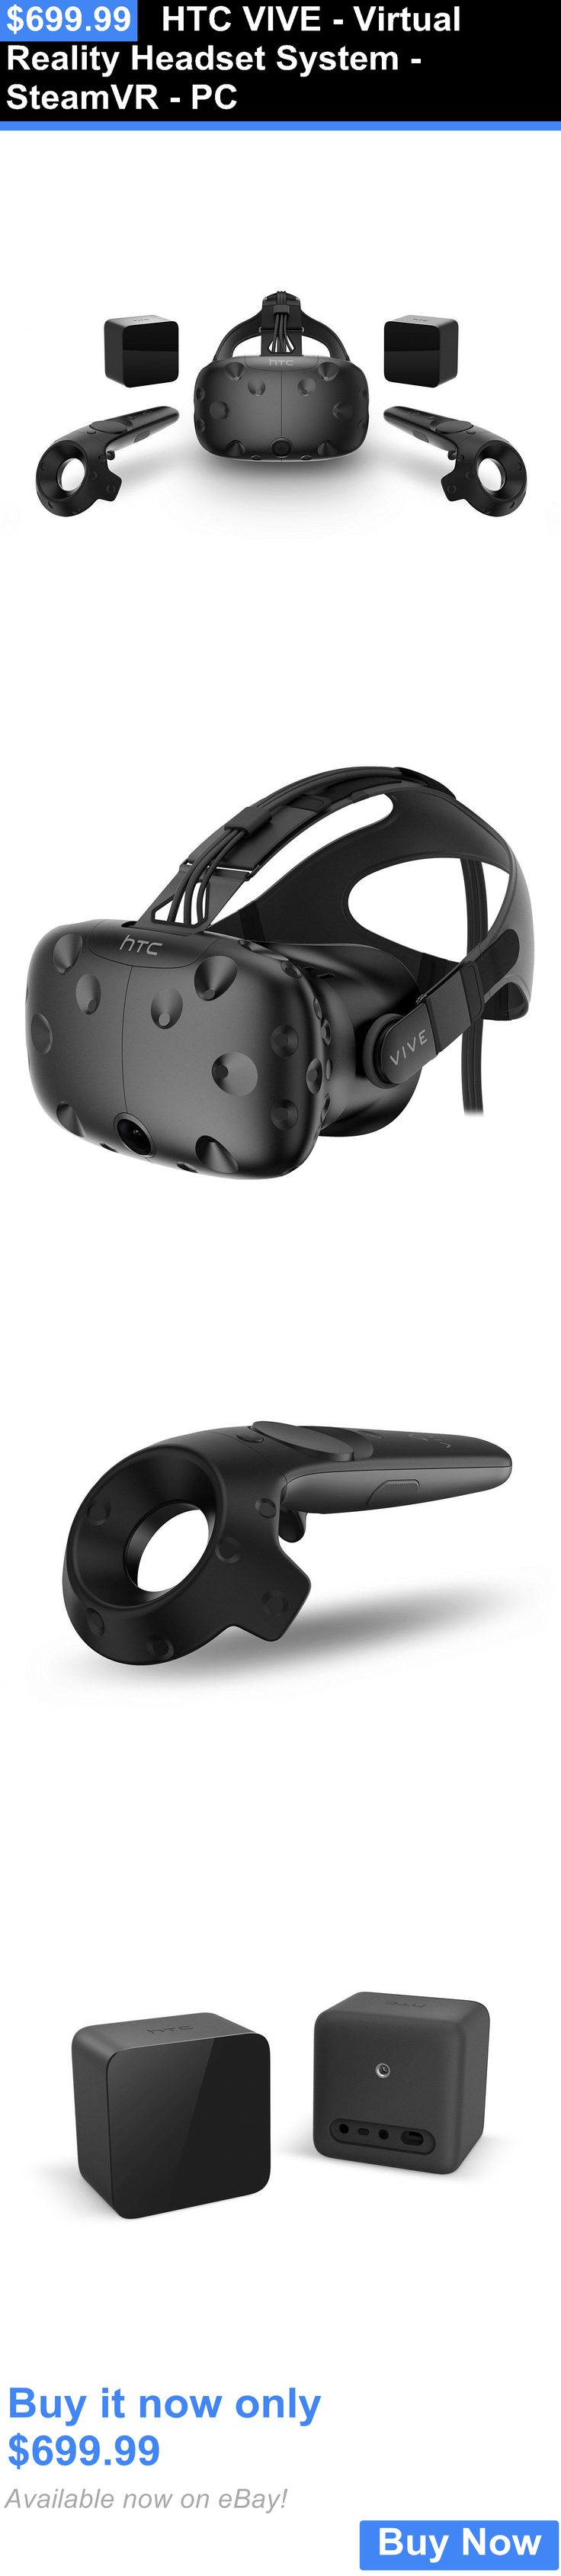 htc vive virtual reality video gaming system. pc and console vr headsets: htc vive - virtual reality headset system steamvr -. vr gamesvideo video gaming